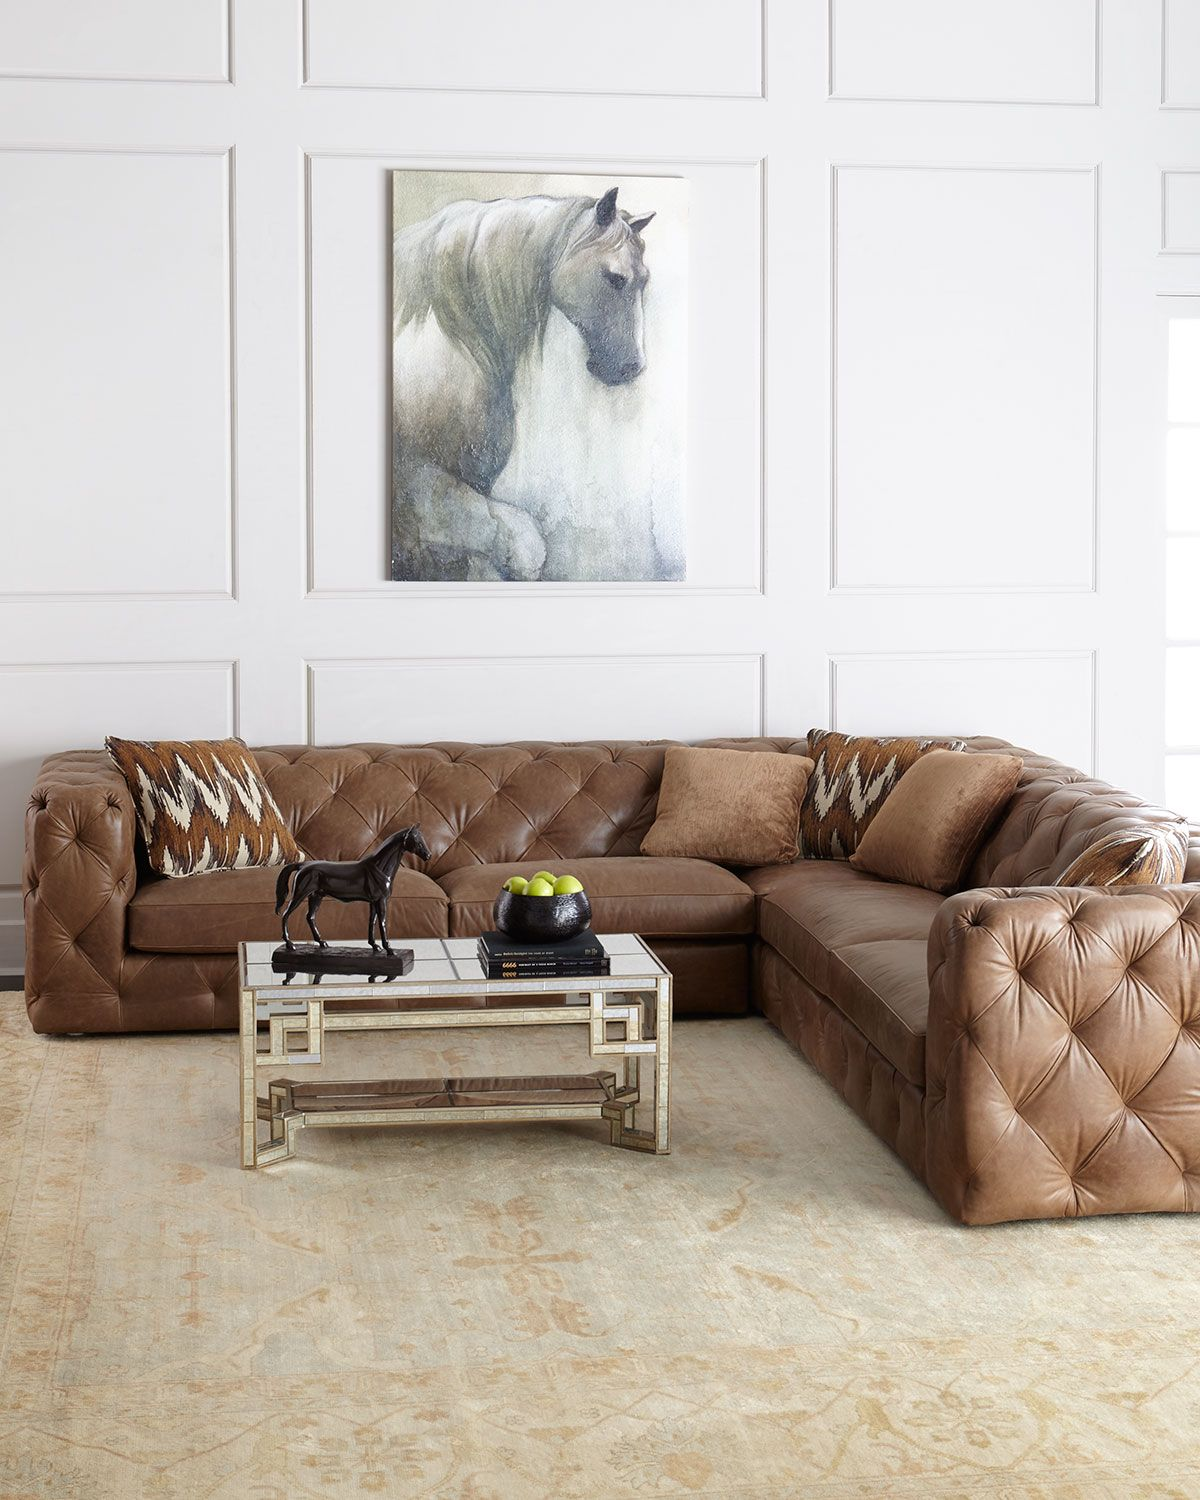 Wiley Chesterfield Leather Tufted Sofa 132 in 2019 | Redford Rustic ...